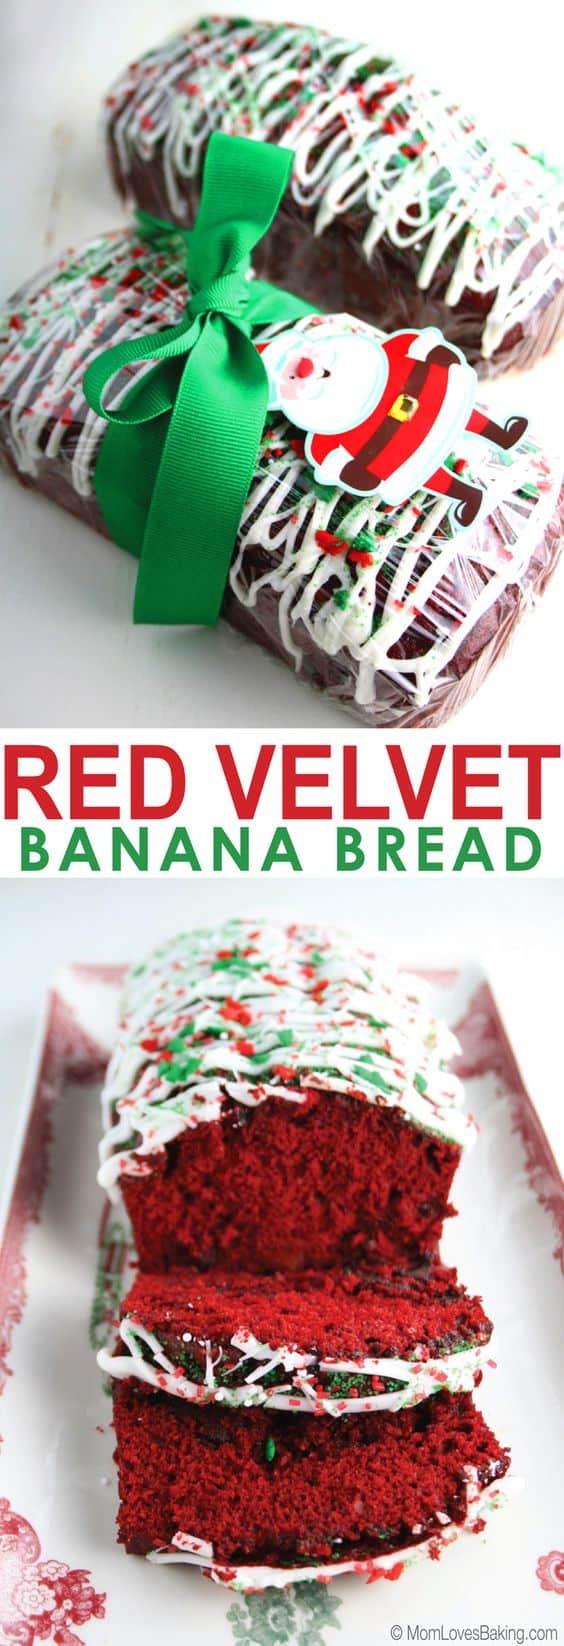 Red Velvet Banana Bread - Best Christmas Desserts - Recipes and Christmas Treats to Try this Year! Try these amazing and cute easy Christmas dessert recipes to have a great party for your kids, friends, and family! Cupcakes, cakes, sweet bites, pies, brownies, home-made Christmas popcorn, Christmas cookies and other delights. #christmas #dessertfoodrecipes #xmas #recipes #food #christmasfood